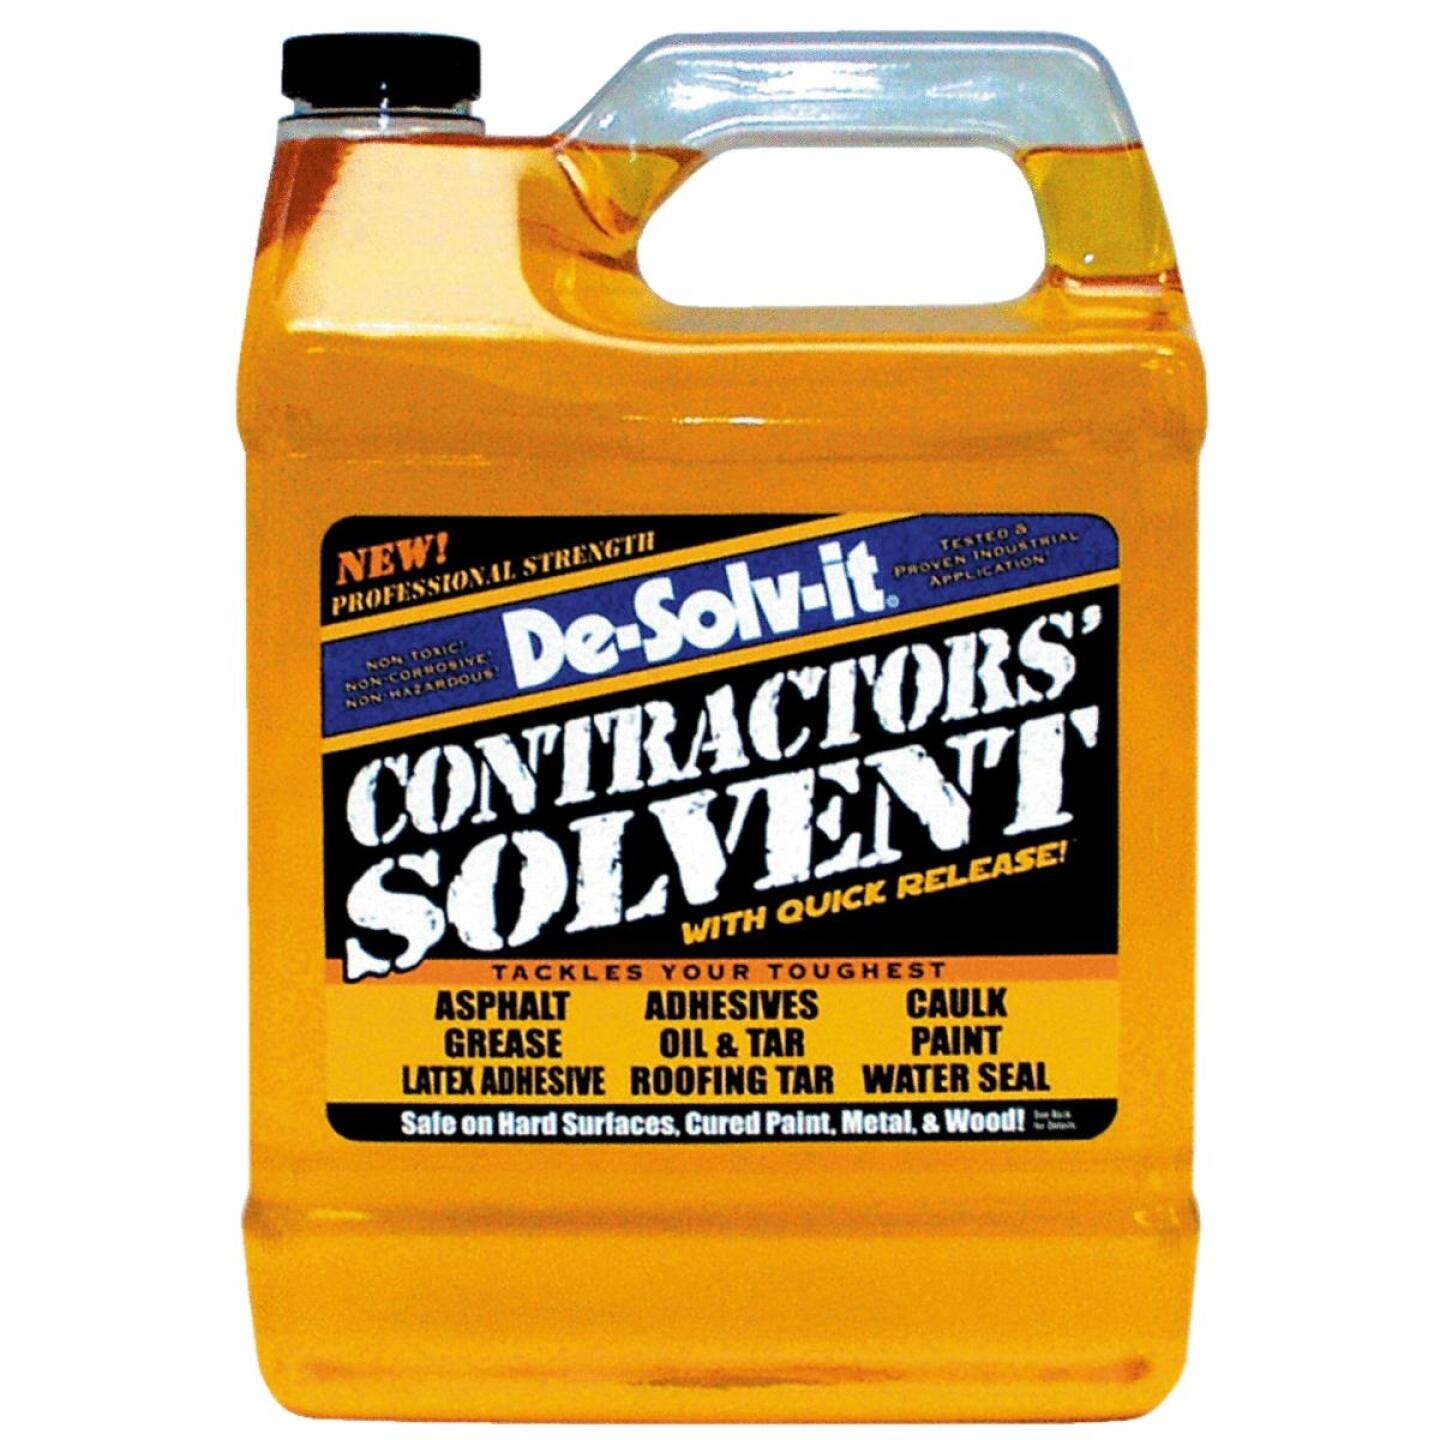 De-Solv-it 1 Gal. Contractors' Solvent Adhesive Remover Image 1